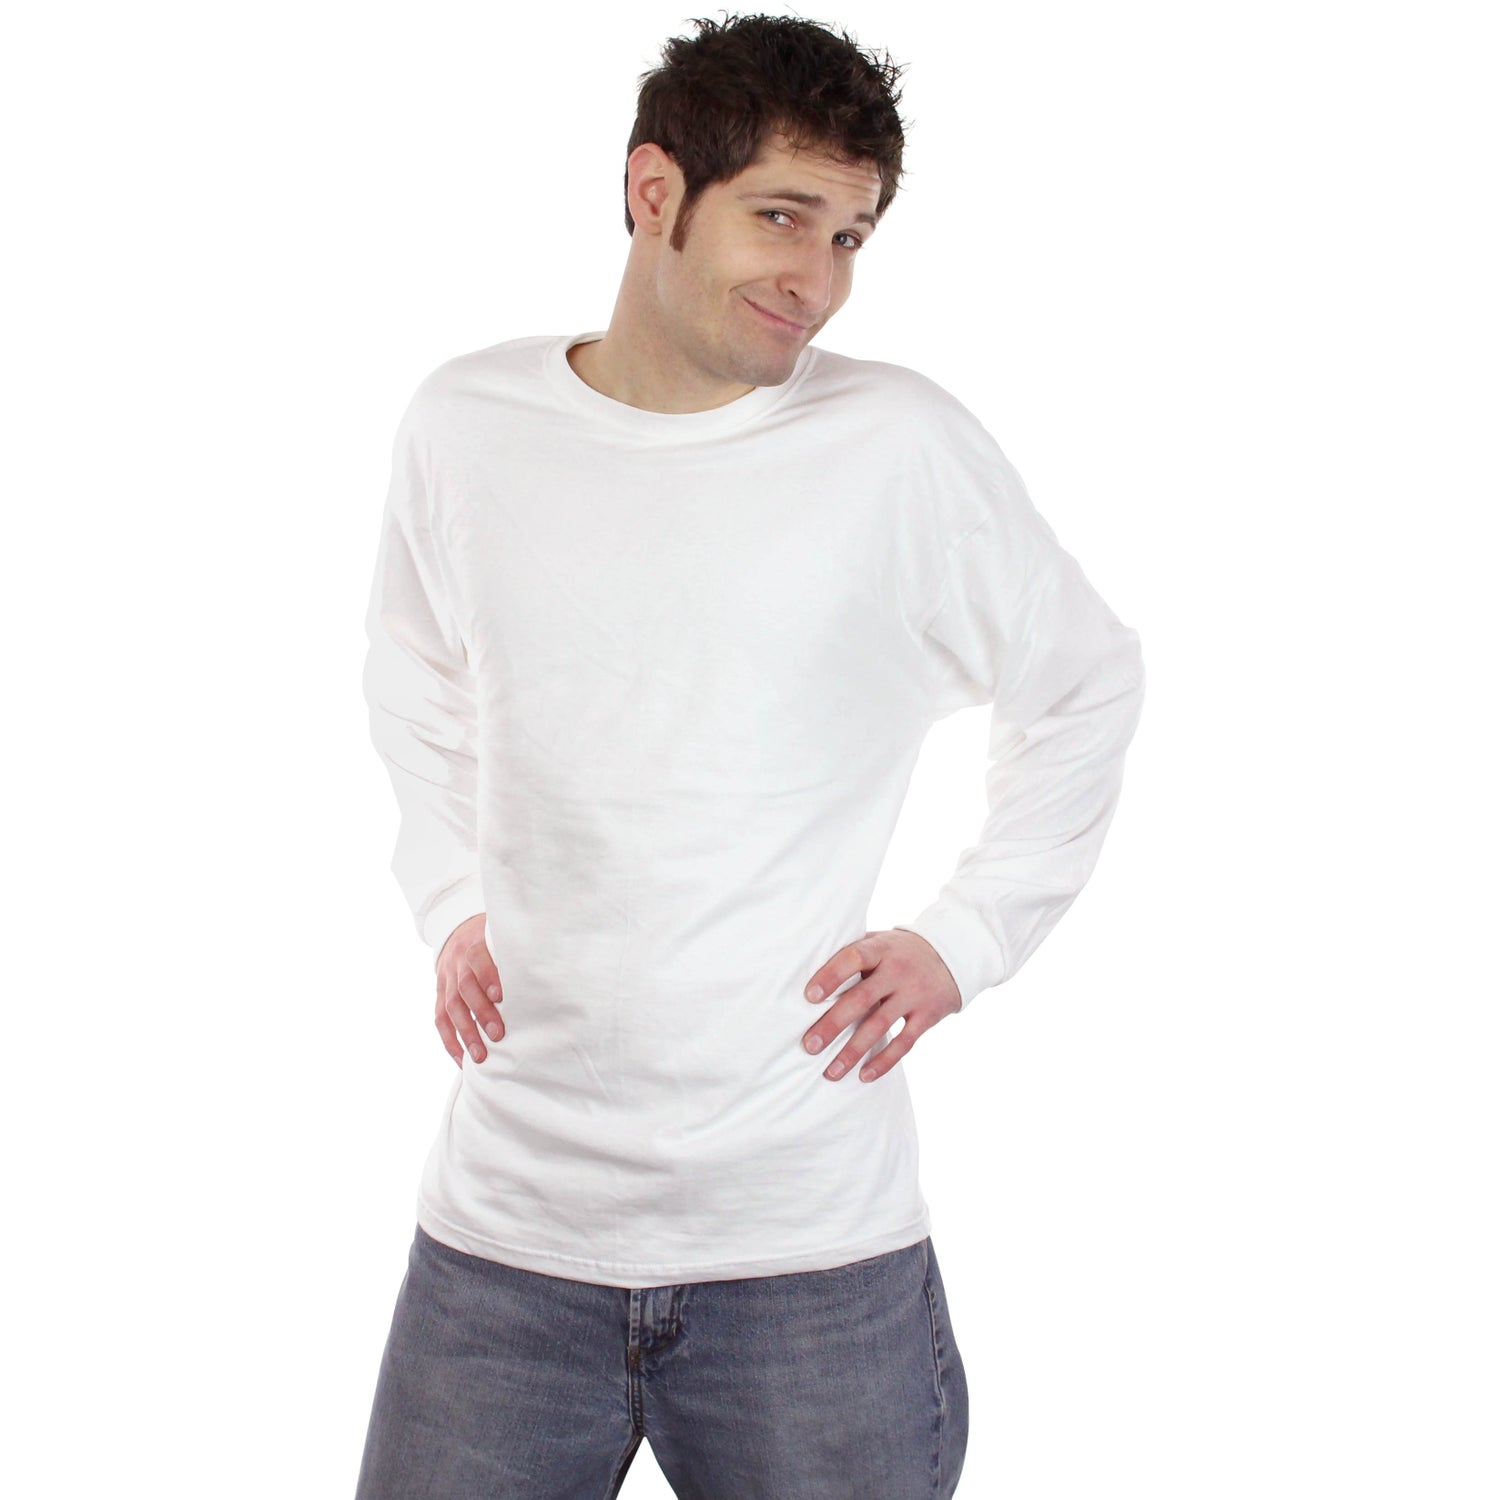 Fruit of the loom long sleeve cotton t shirt white for Long sleep shirts cotton